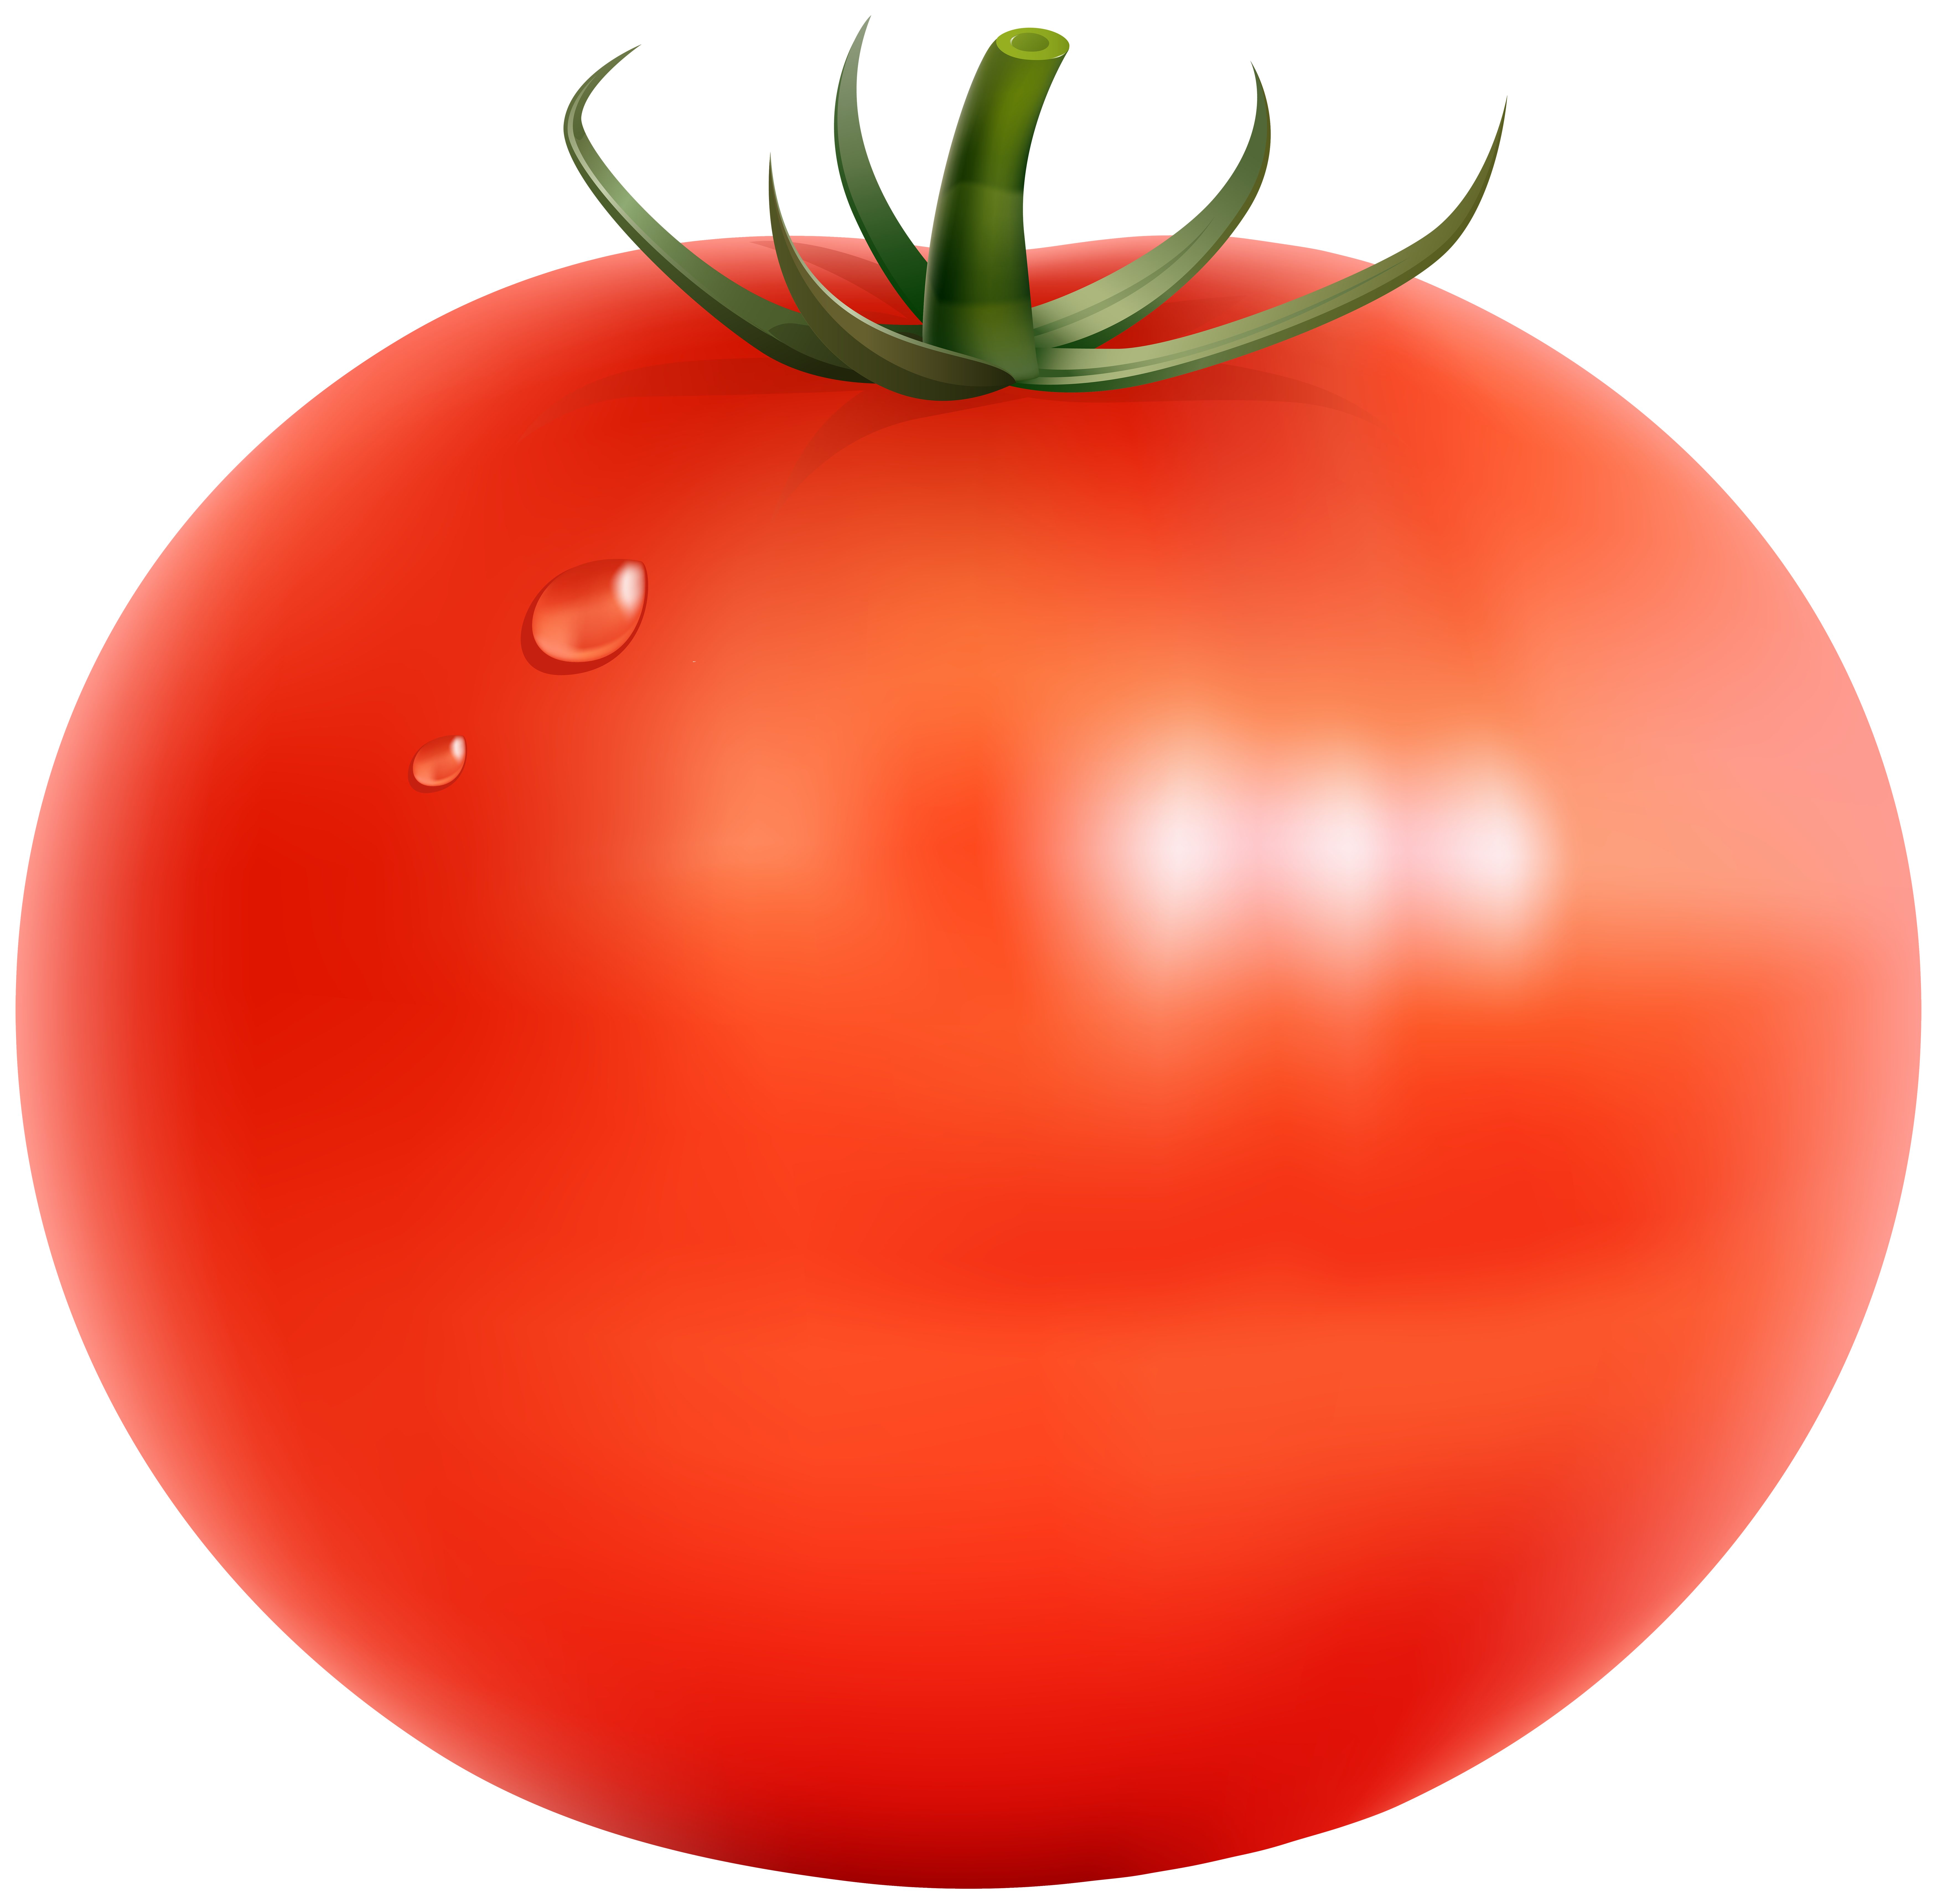 Tomatoes clipart clear background. Tomato transparent png clip